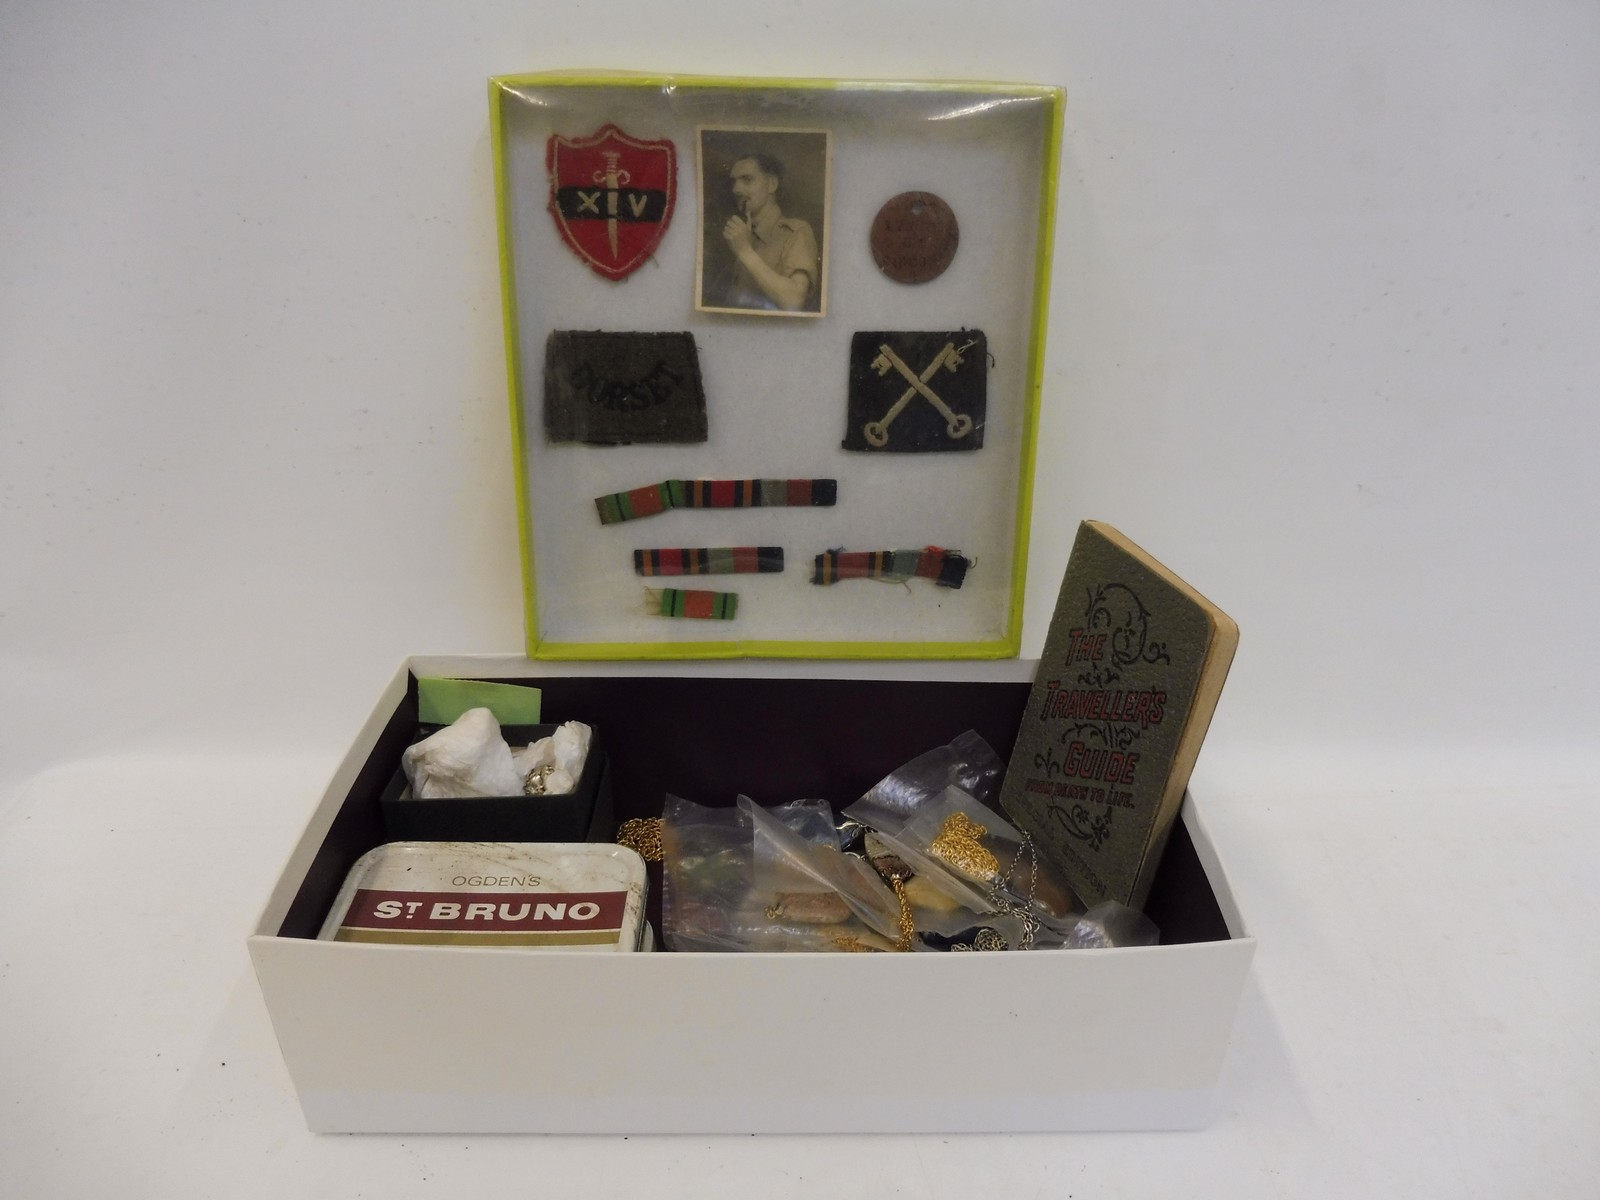 Lot 57 - A box of mixed jewellery and a group of military ribbons, insignia etc.